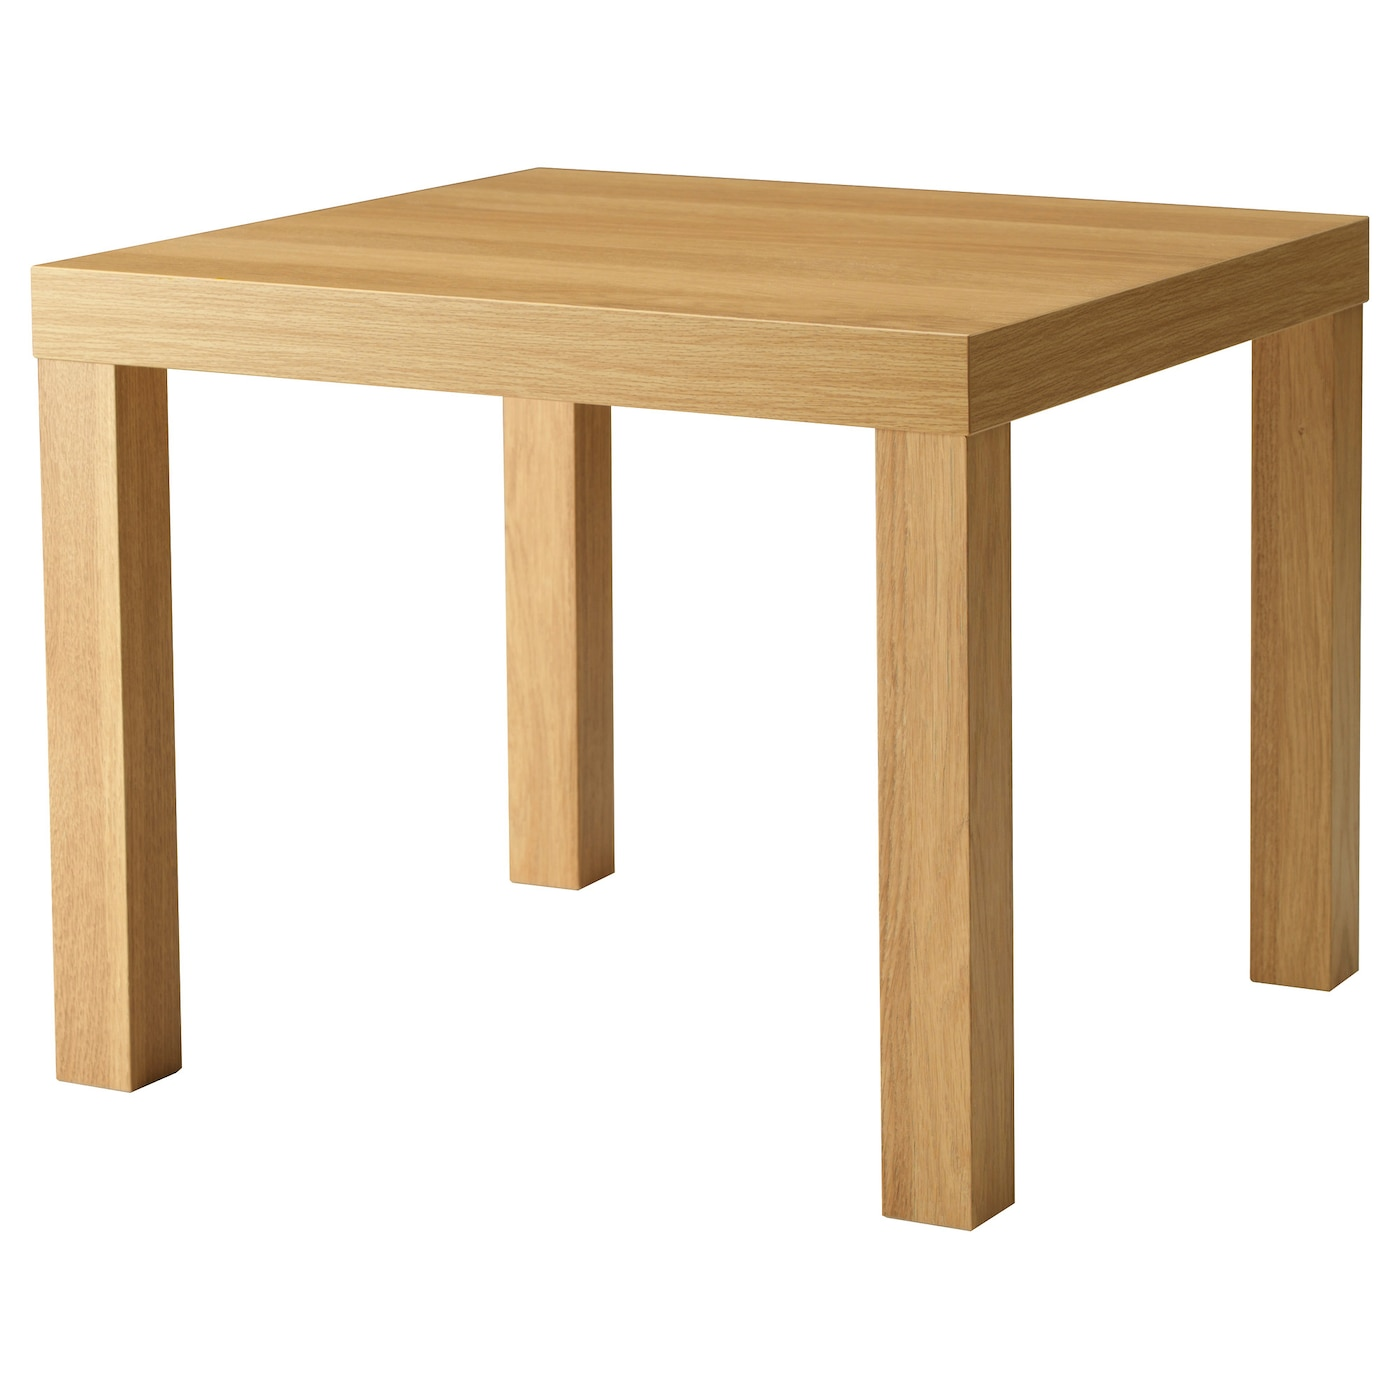 LACK Side table Oak effect 55x55 cm IKEA